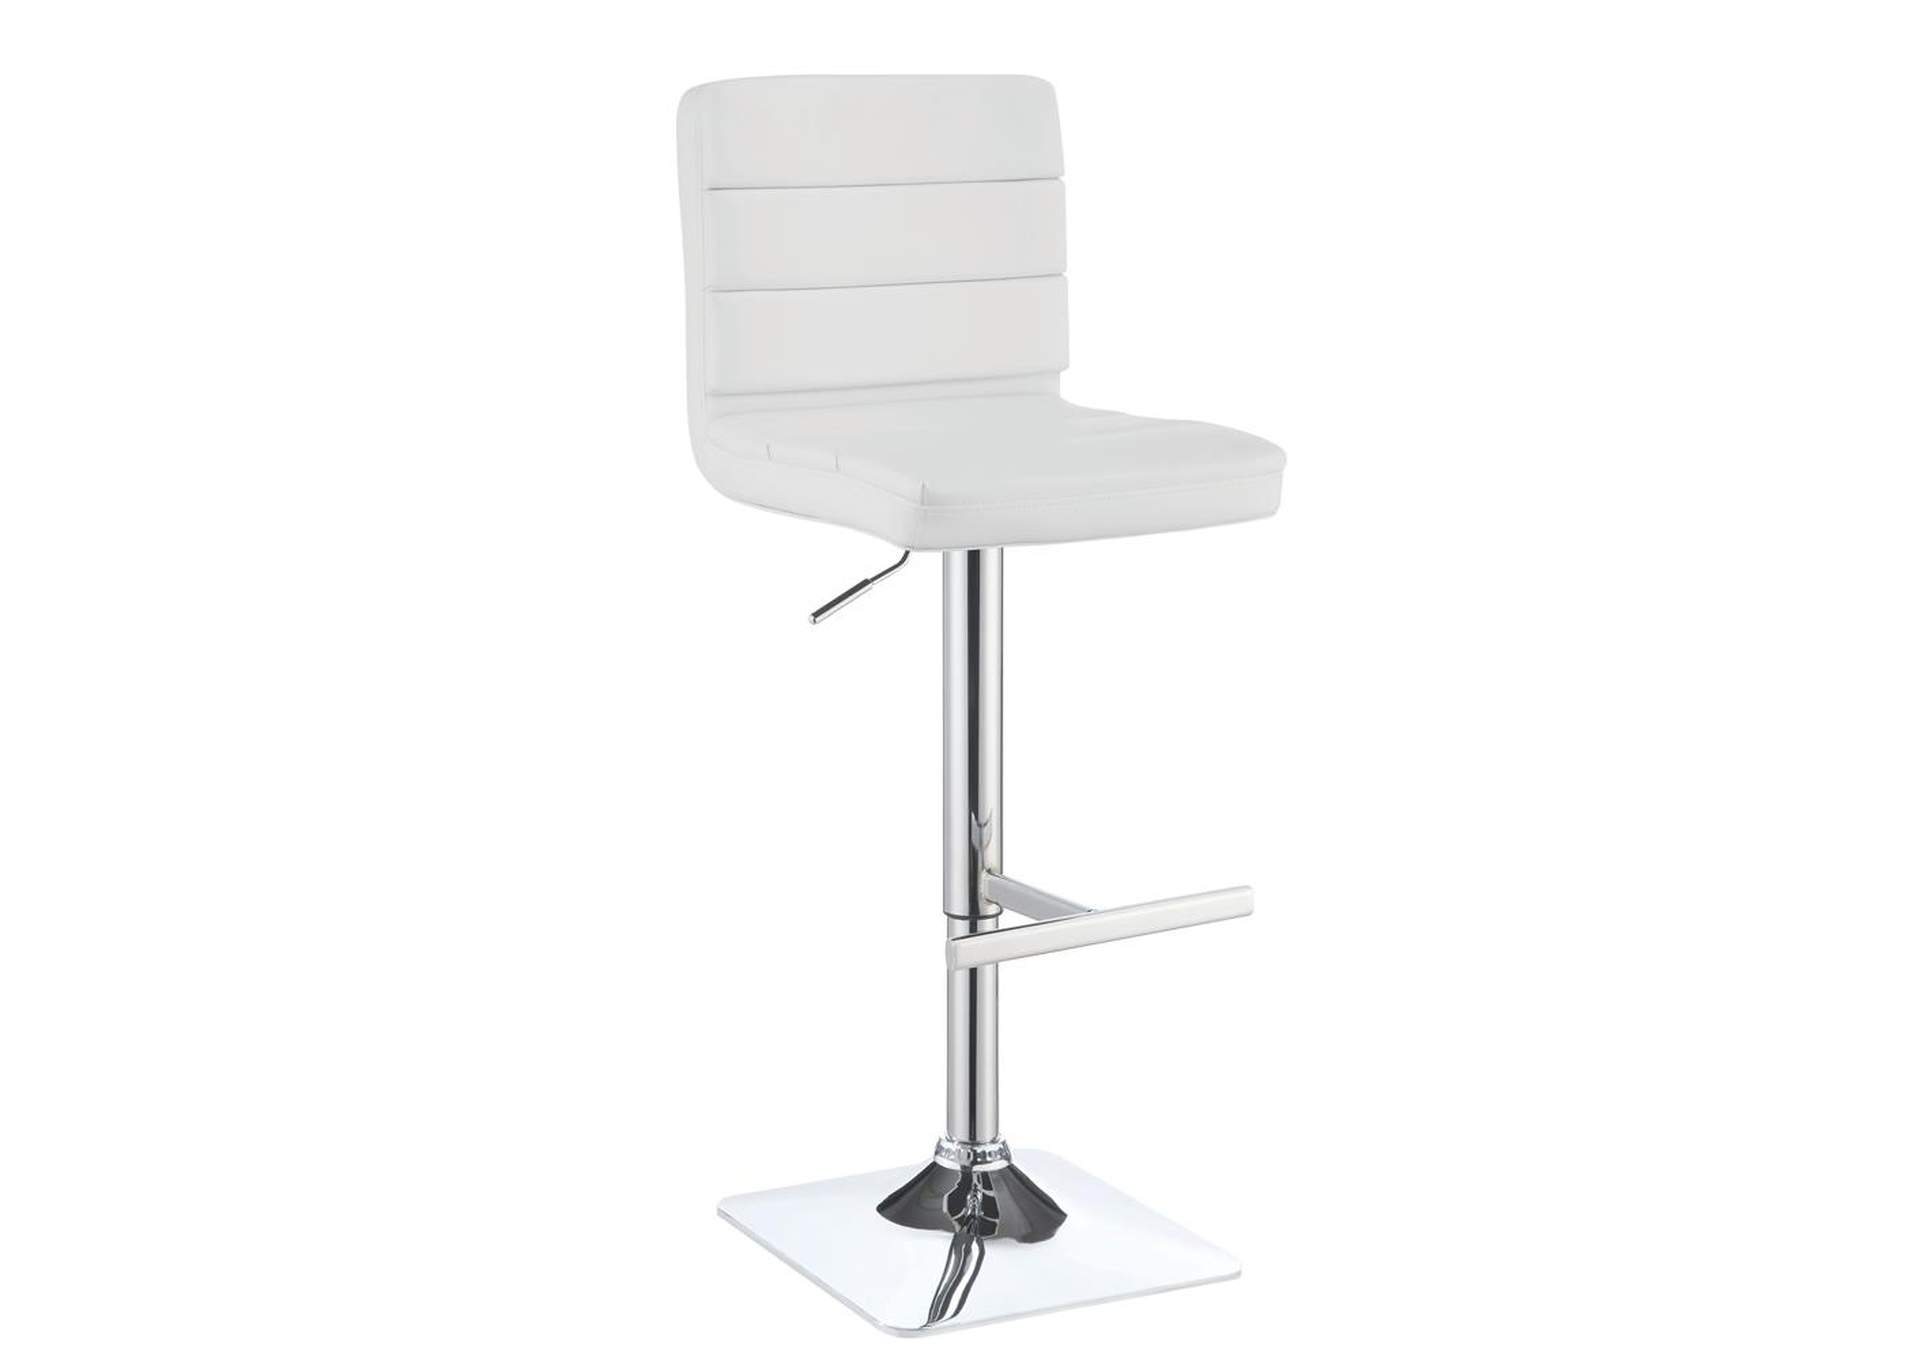 Upholstered Adjustable Bar Stools White And Chrome (Set of 2),Coaster Furniture